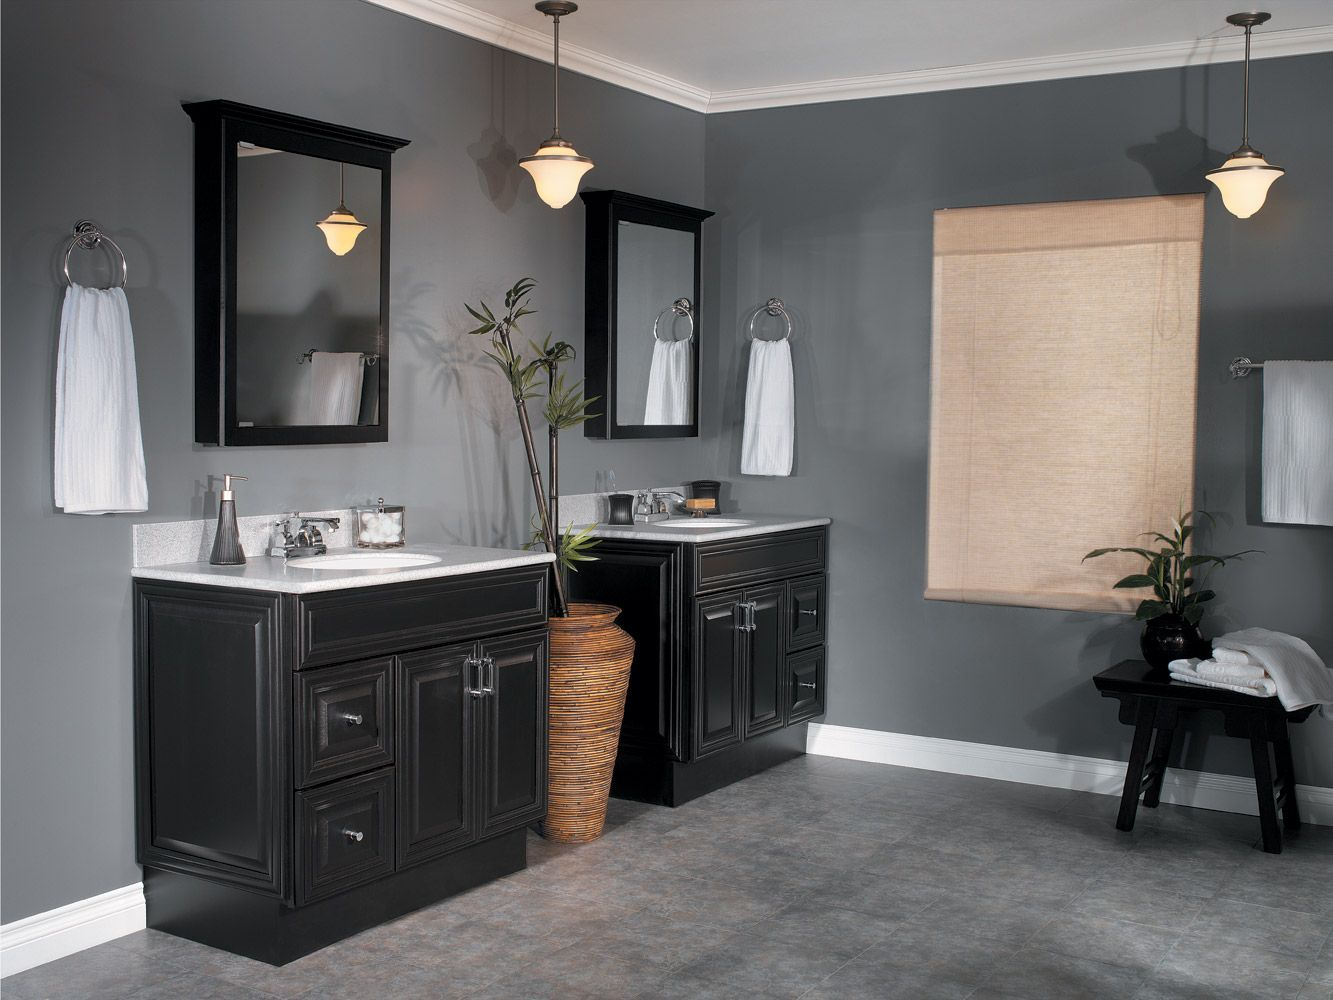 Images bathroom dark wood vanity tile bathroom wall along with black master bath cabinet Bathroom cabinets gray